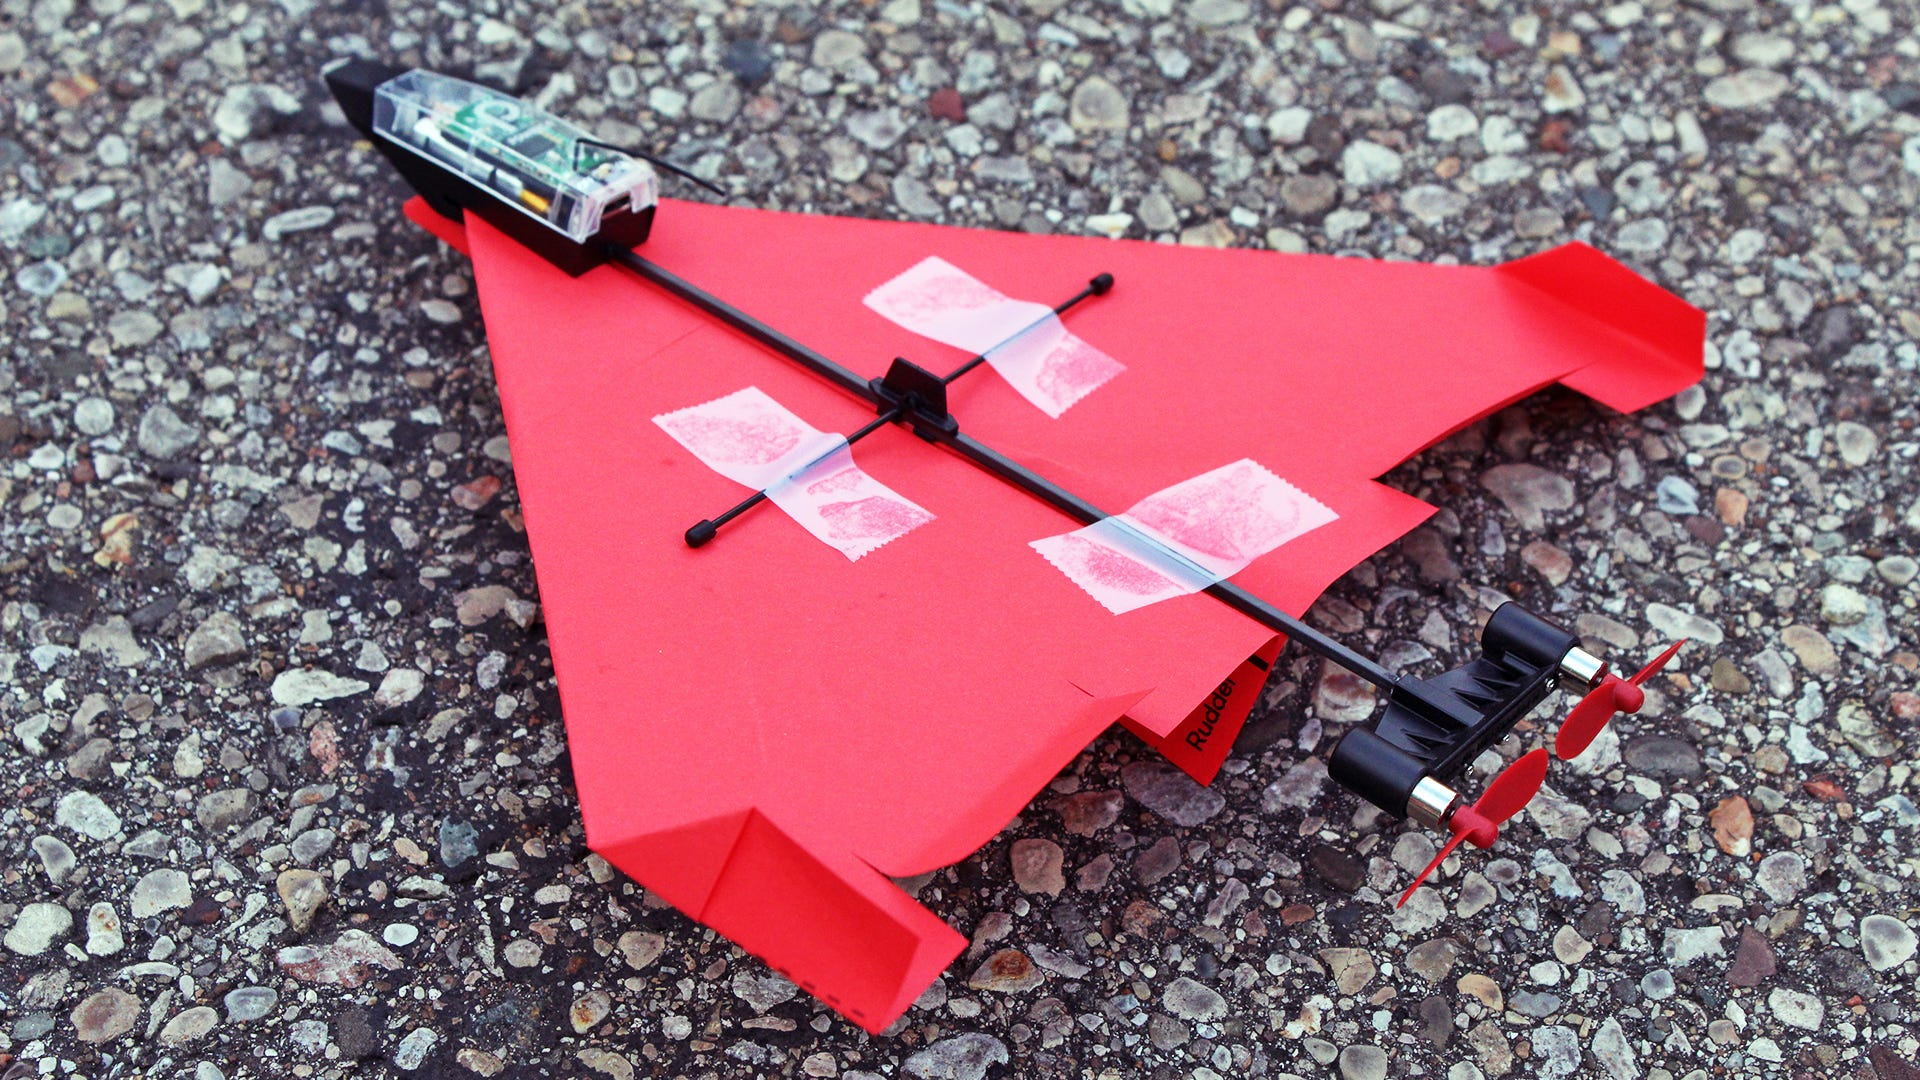 A paper airplane tethered to an RC airplane-like drone.